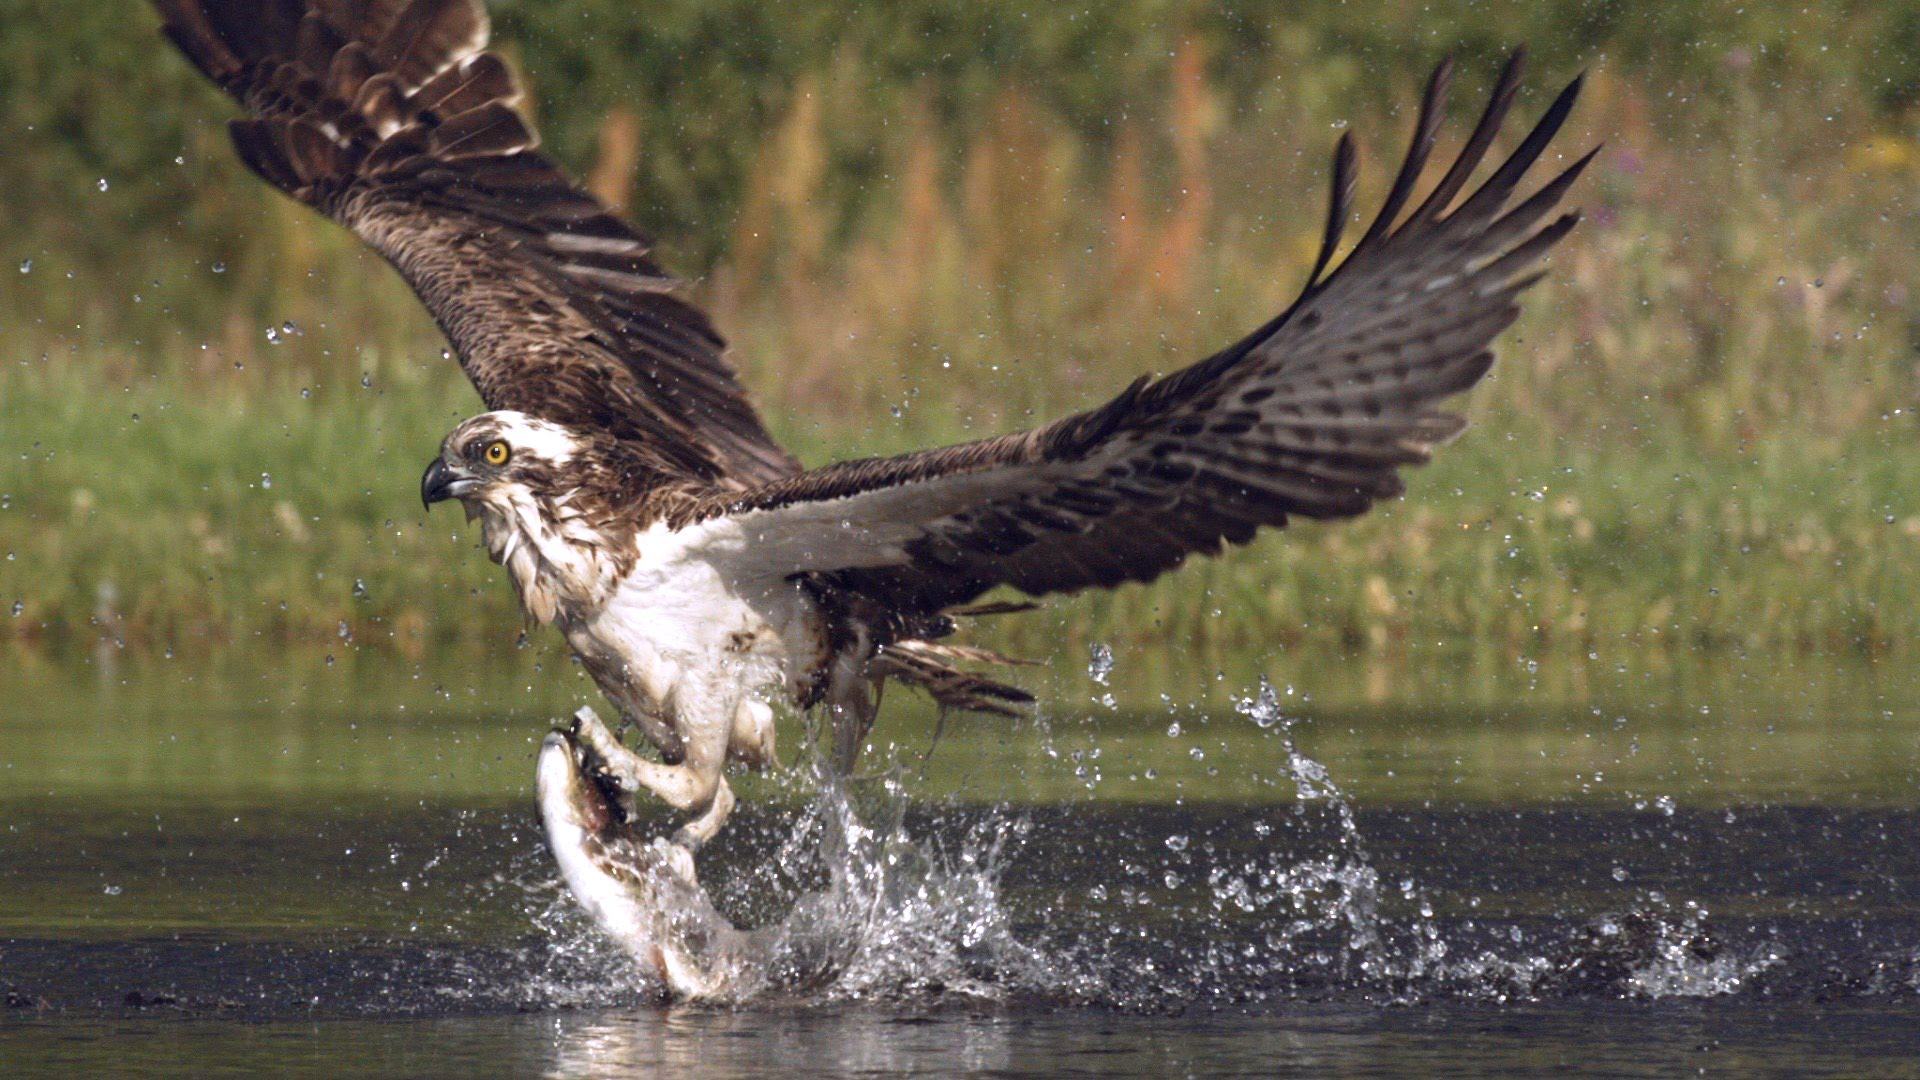 An osprey fishing in spectacular super slow motion | Highlands — Scotland's Wild Heart